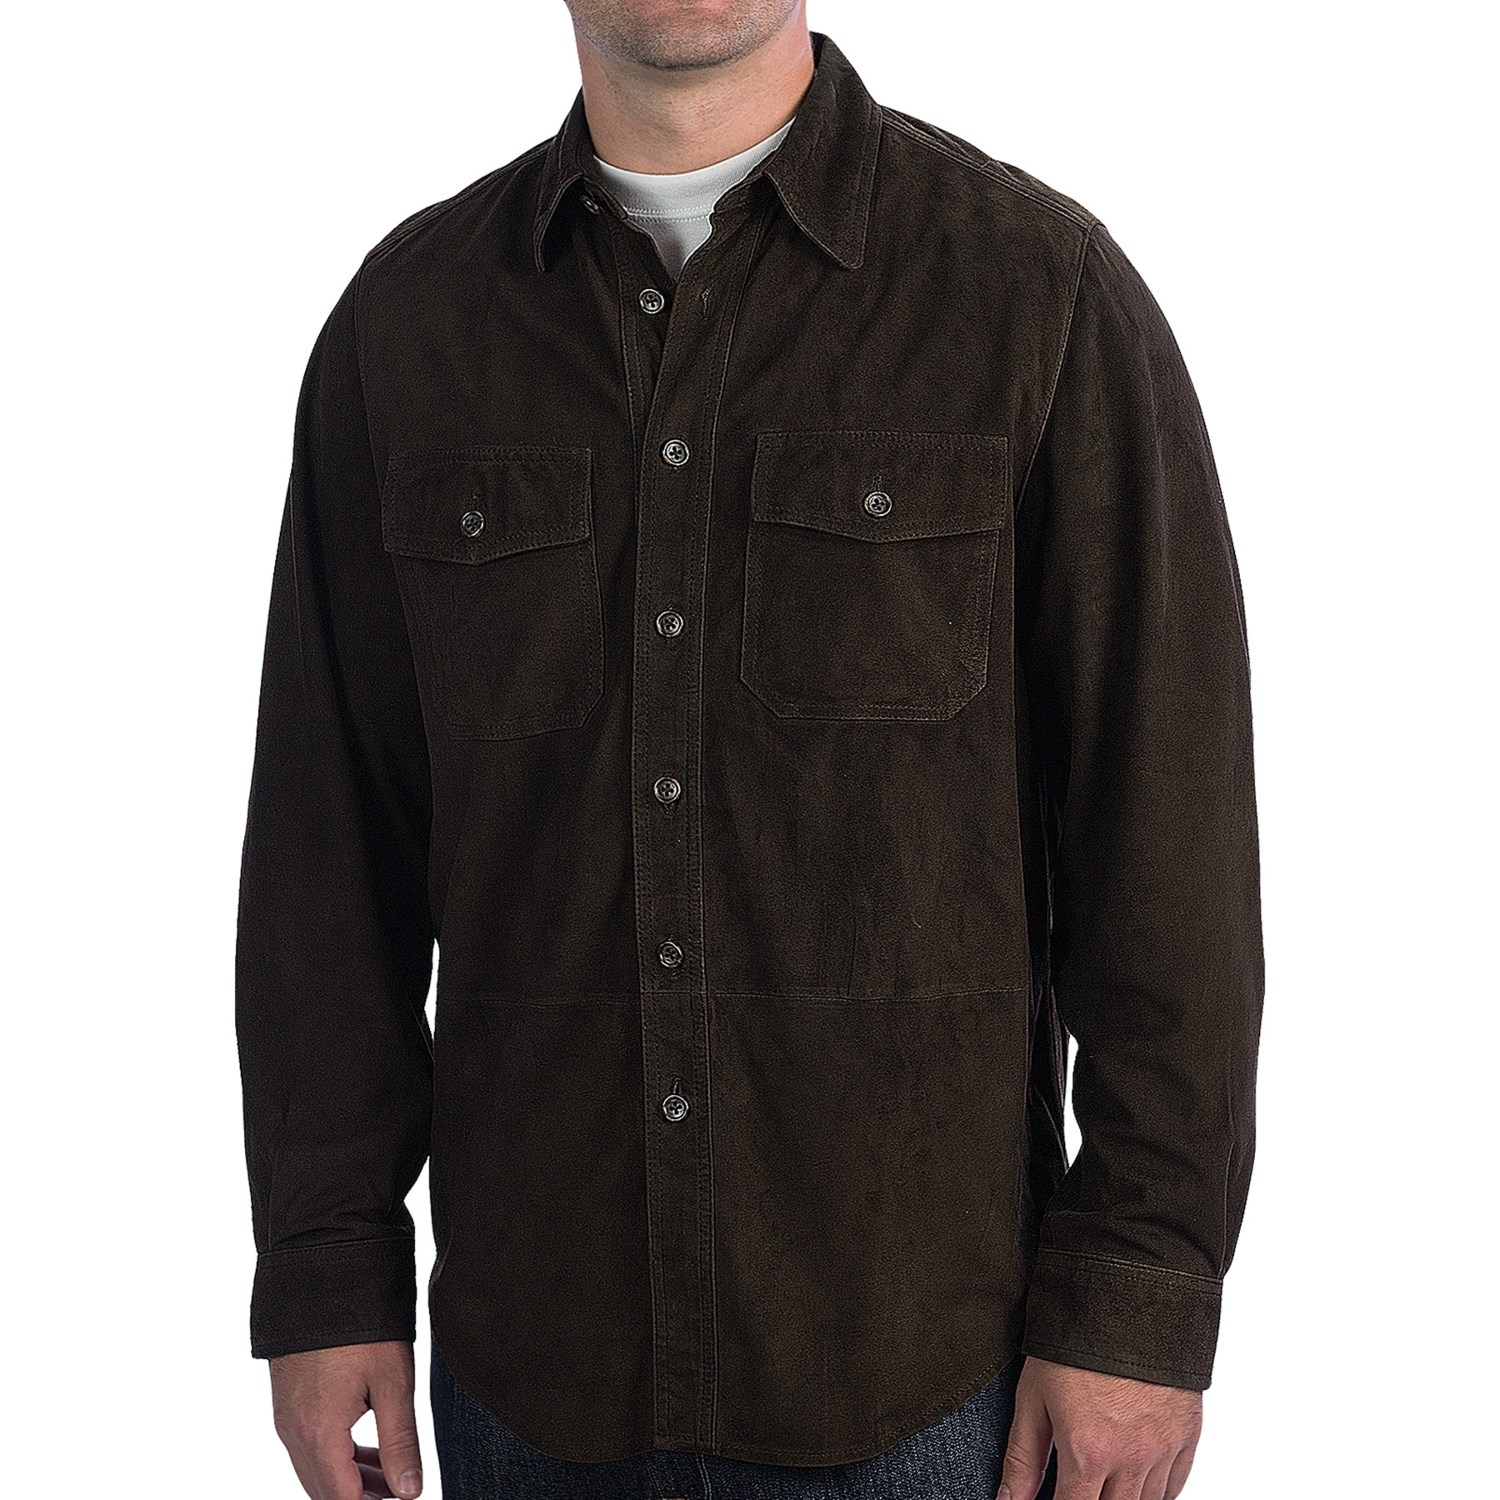 Bullock Jones Goat Suede Shirt Jacket For Men